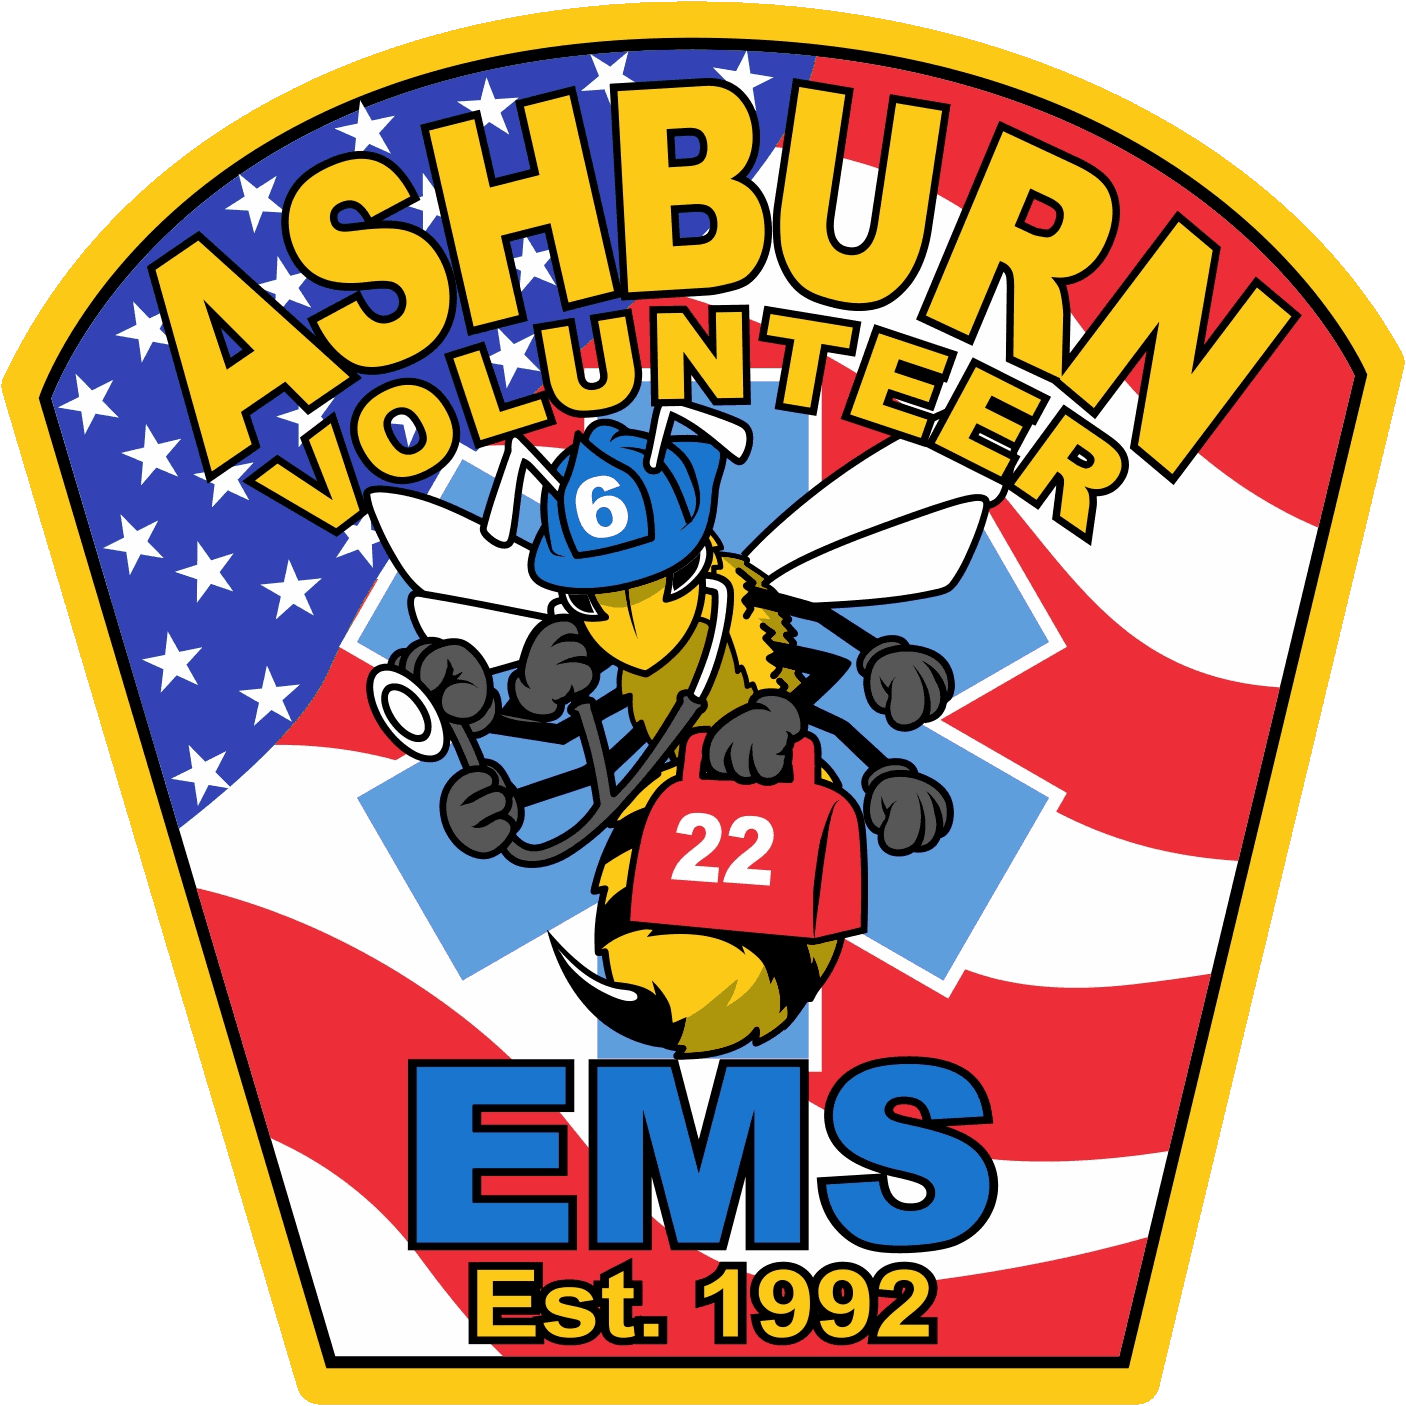 Grilling clipart fire incident. Avfrd reveals new ems